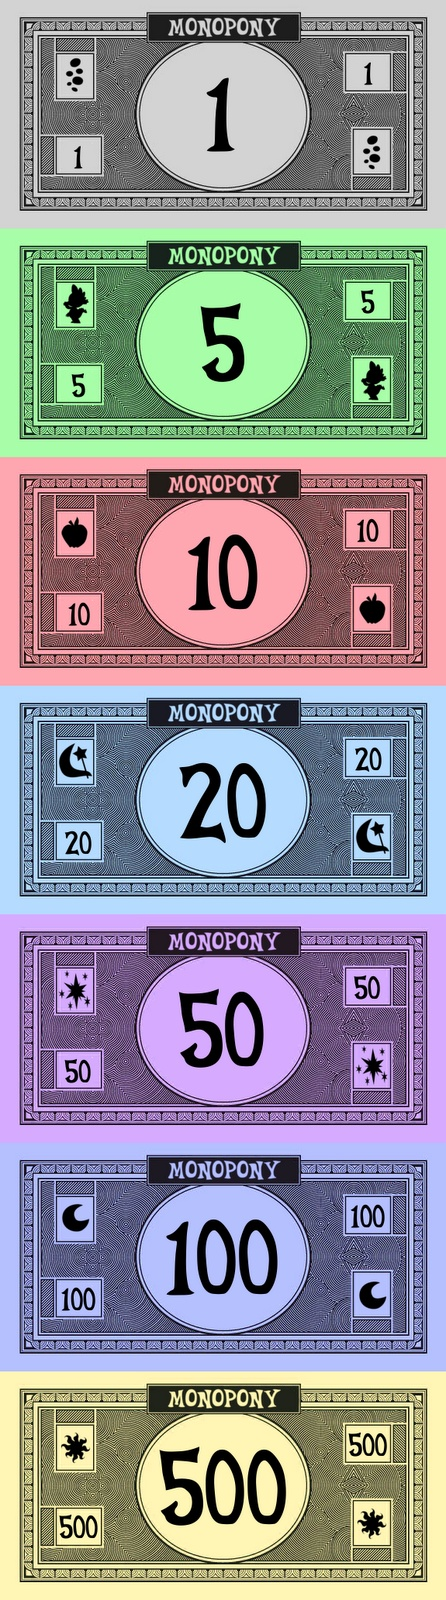 18 best monopoly game images on pinterest for Monopoly money templates